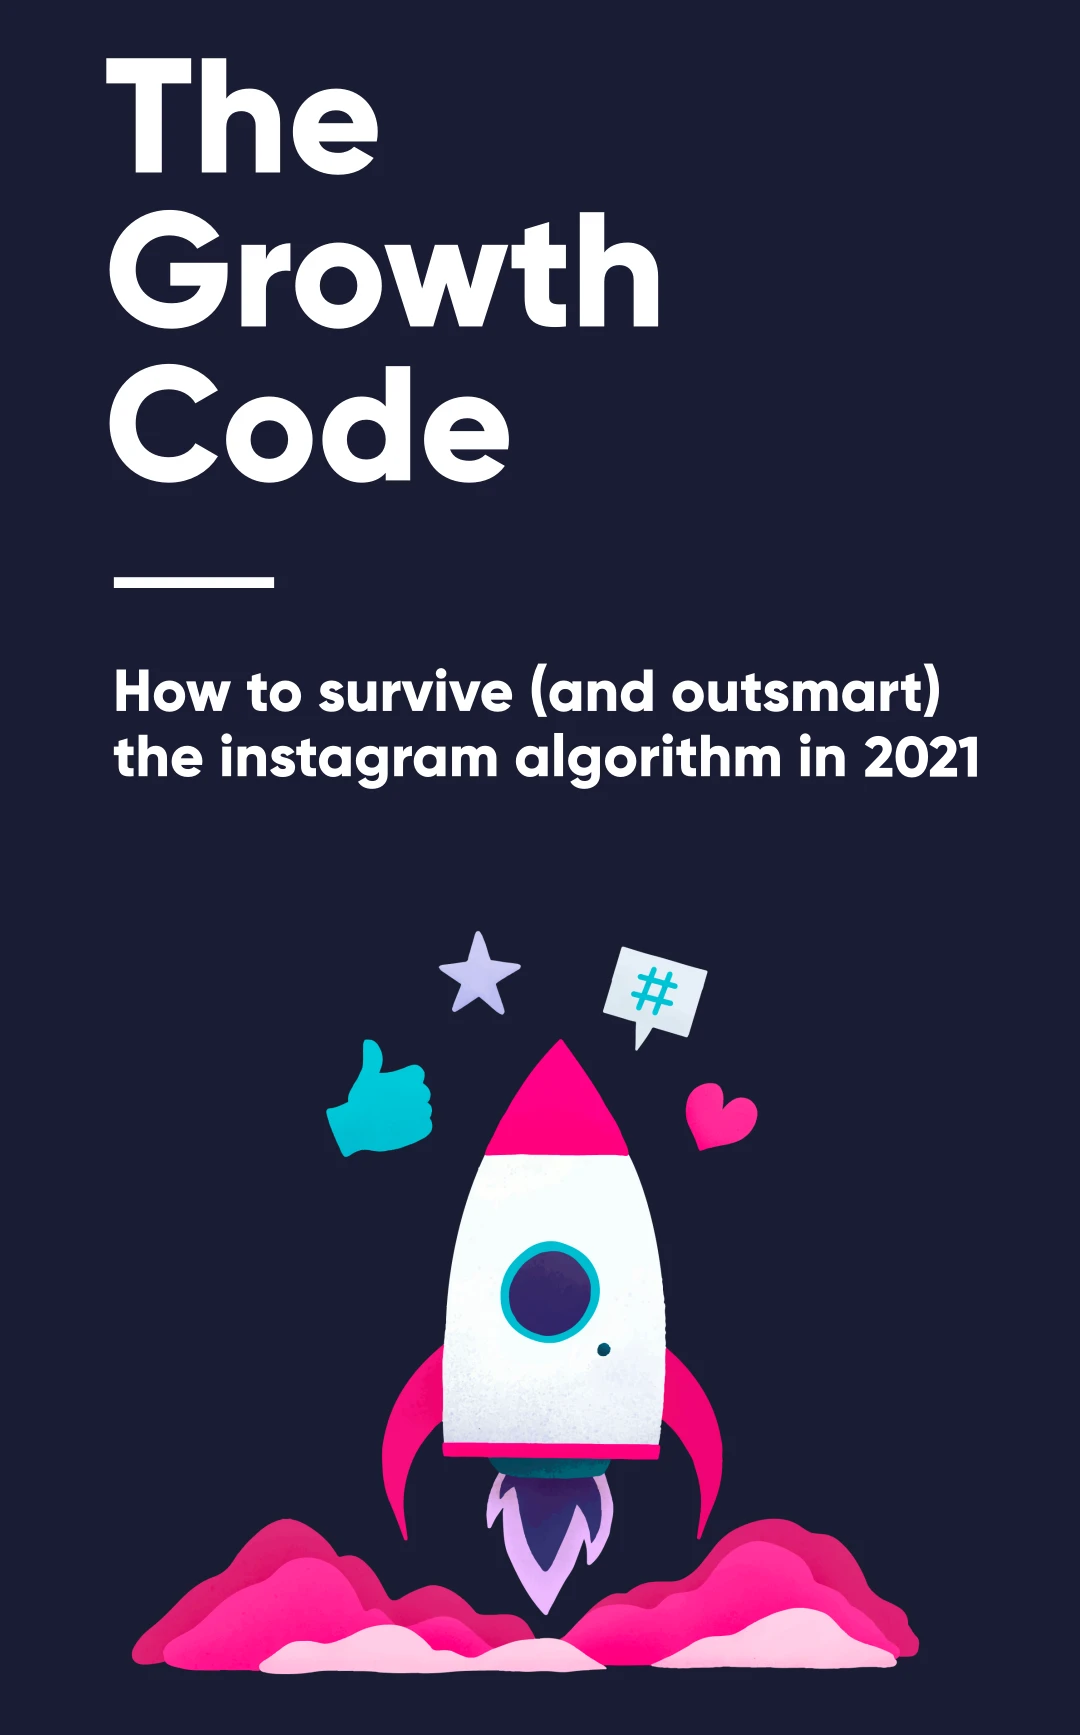 The Growth Code: Explosive Instagram Growth Guide [2021 Edition]